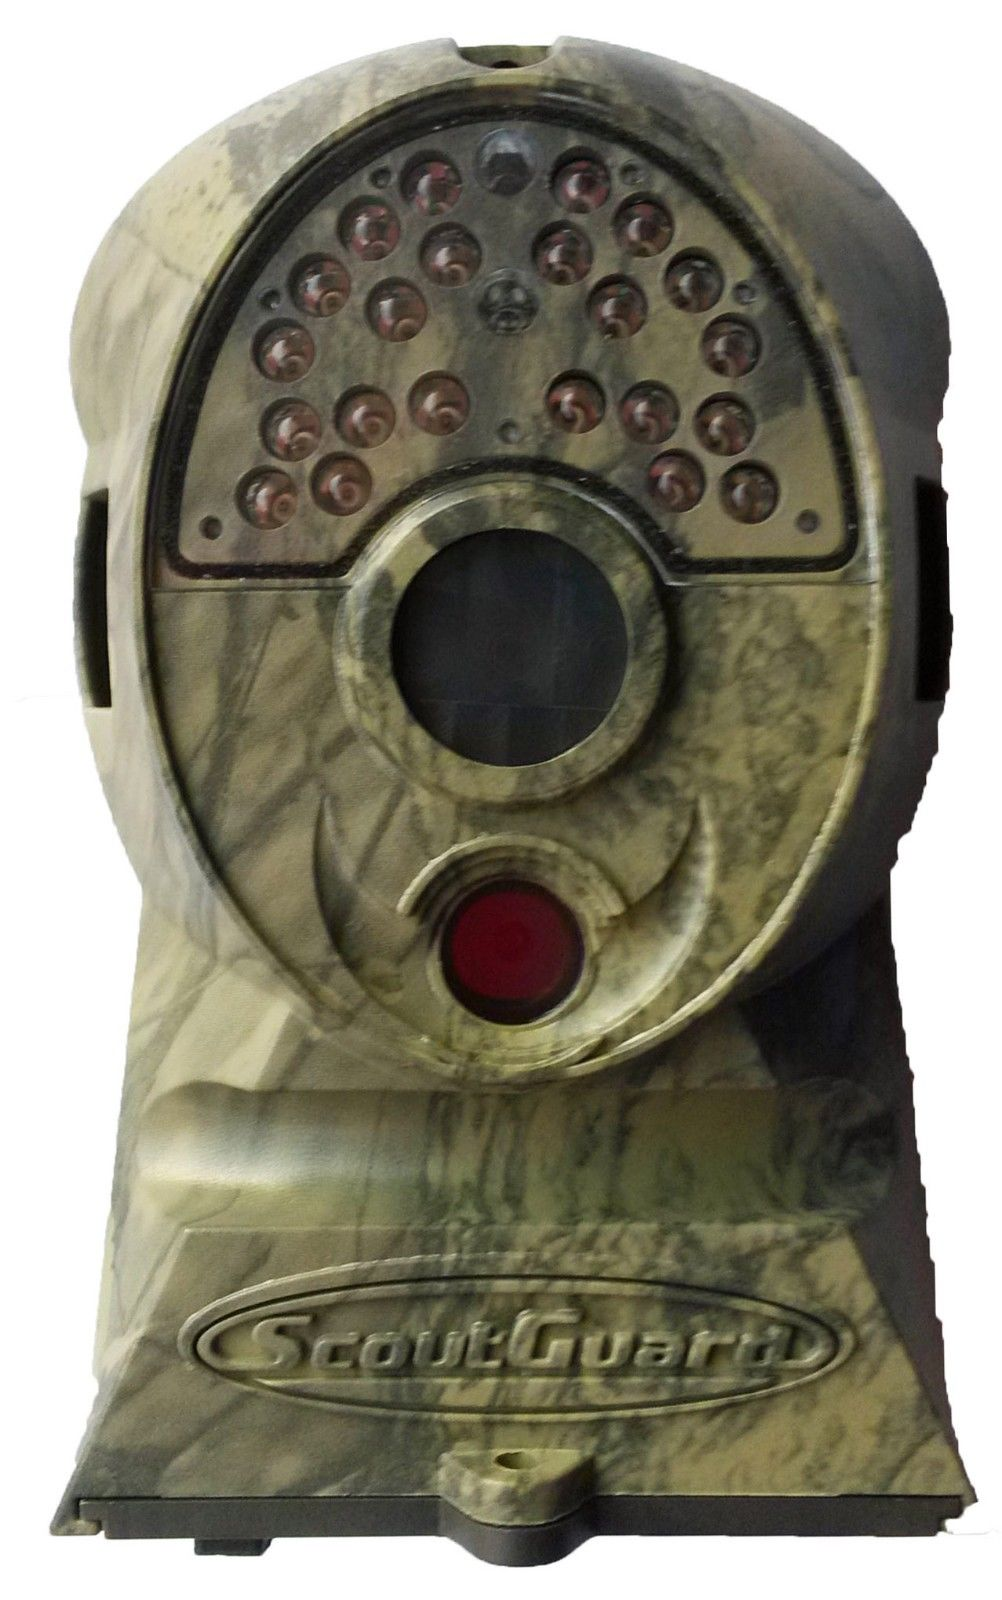 ScoutGuard SG550V-31B No Glow Infrared Trail Camera